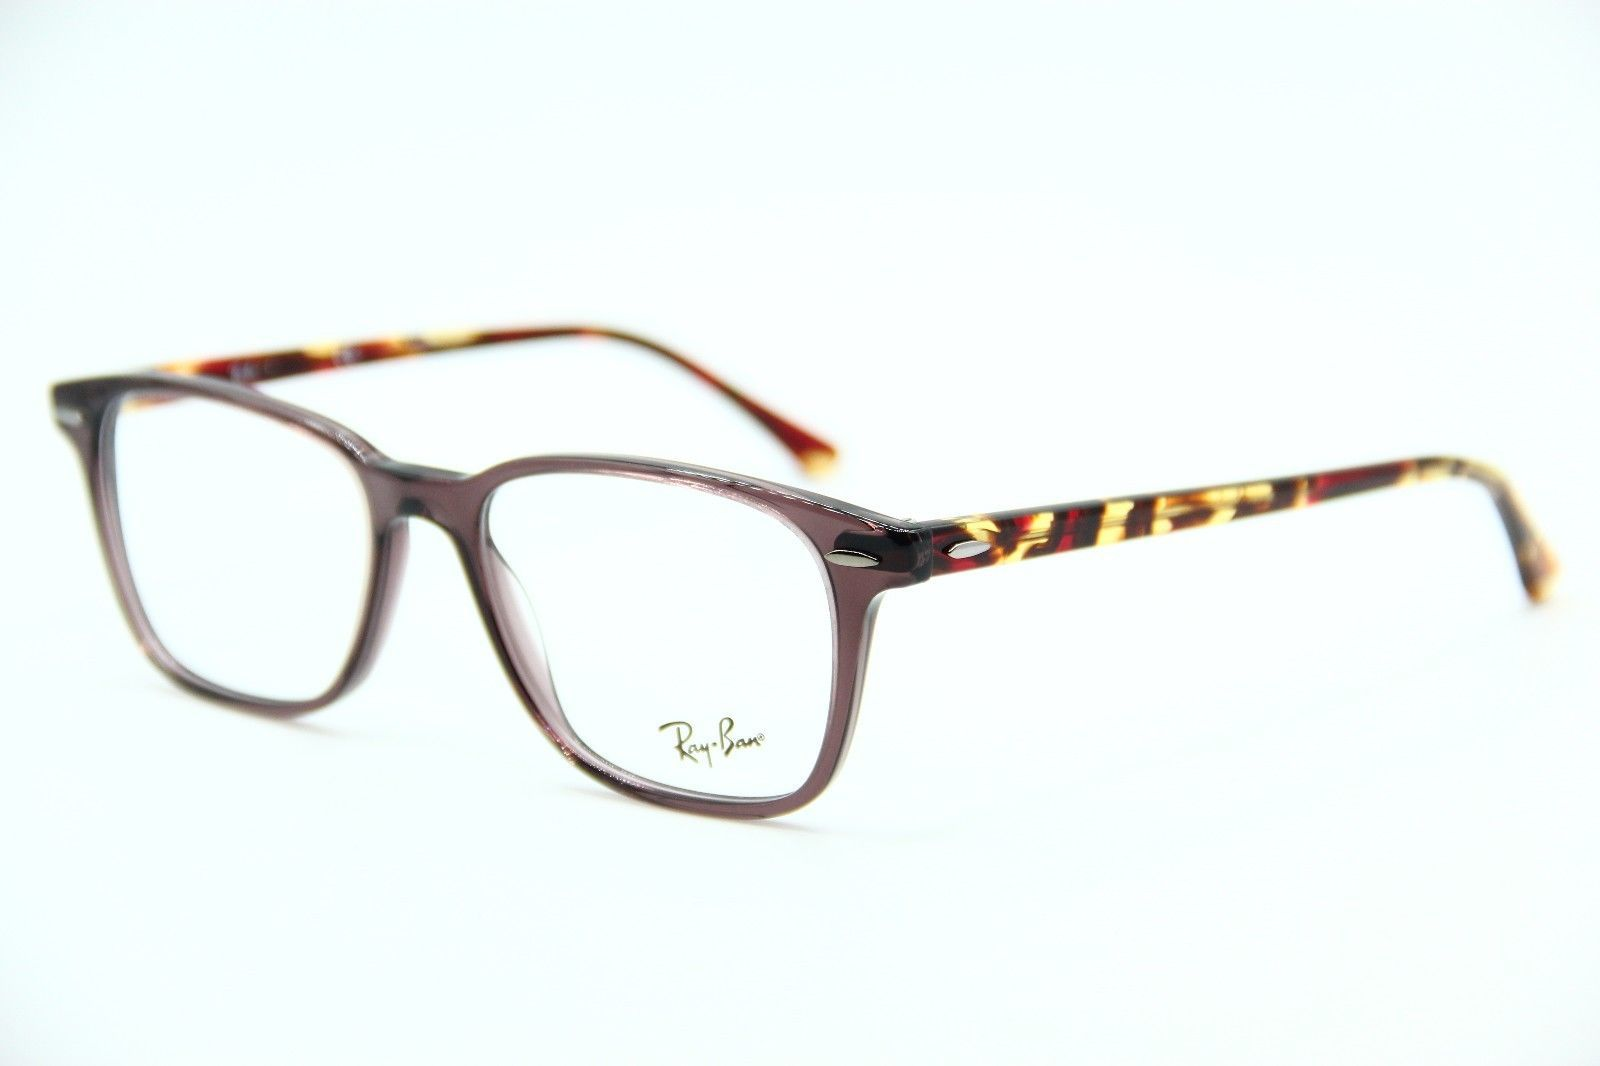 fd814971b2d1c 57. 57. Previous. NEW RAY-BAN RB 7119 8023 HAVANA EYEGLASSES AUTHENTIC RX  RB7119 53-17 · NEW RAY-BAN ...